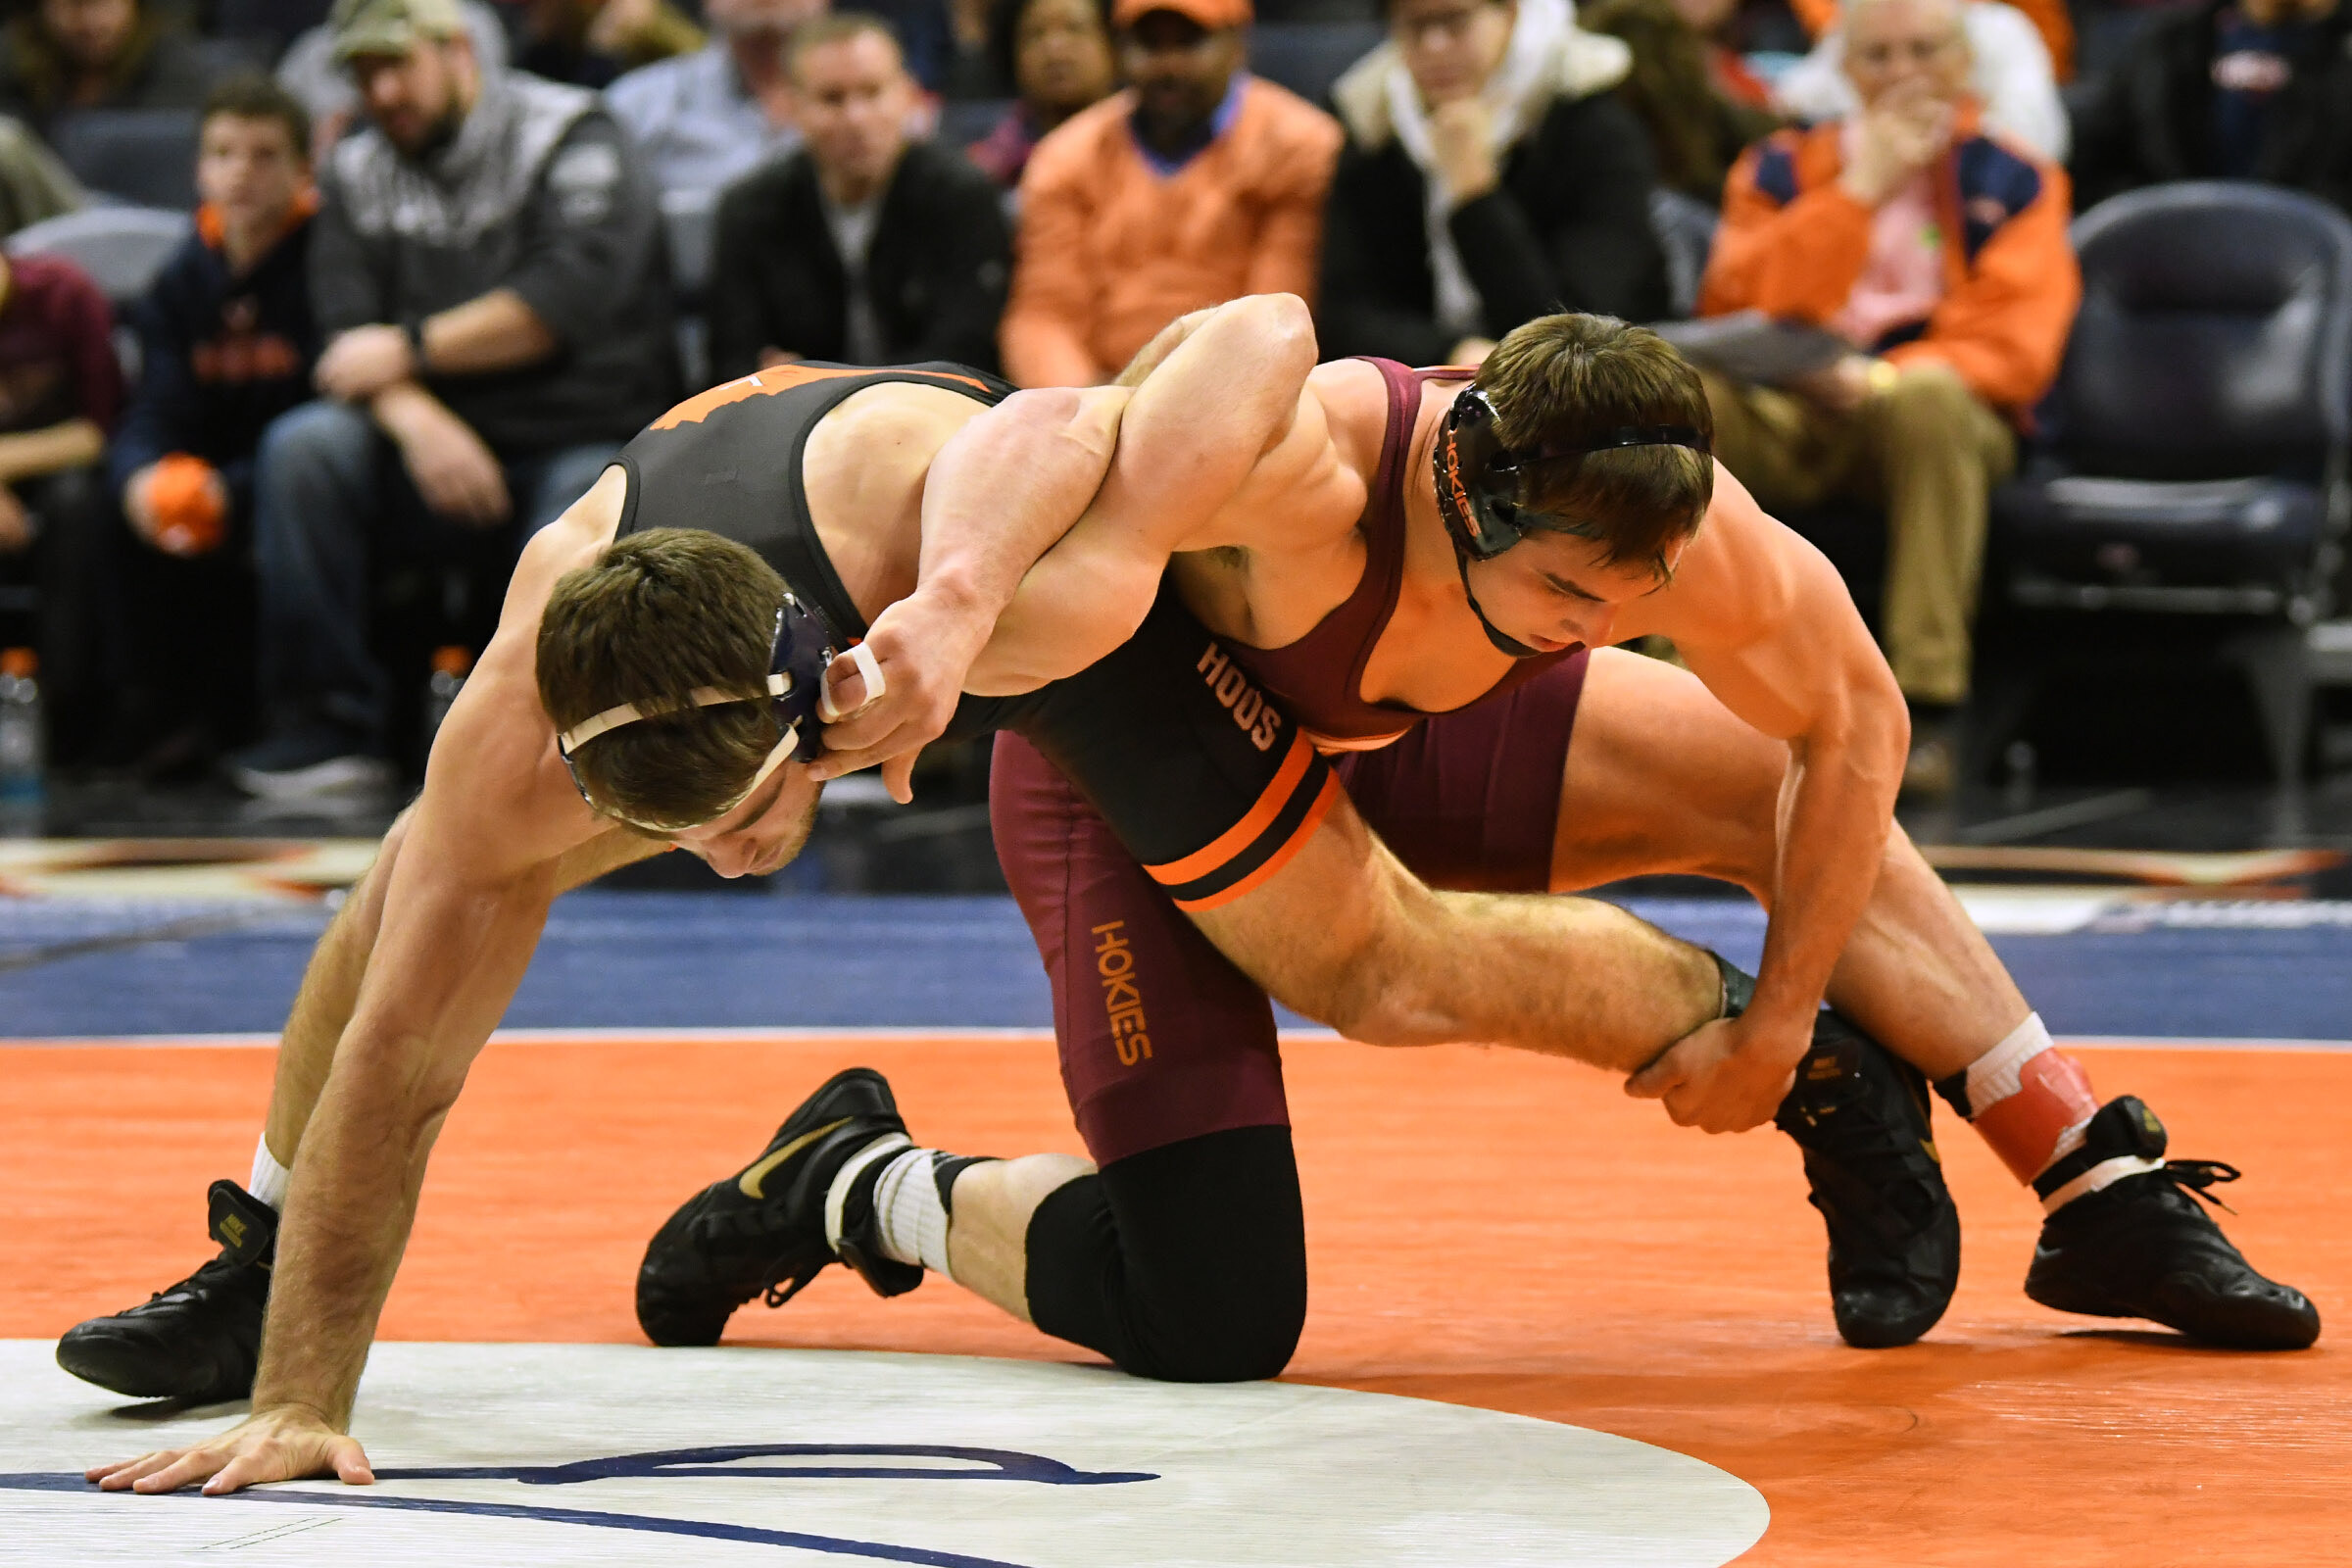 Matchups to Watch for No. 7 Virginia Tech Wrestling Against No. 10 Pittsburgh